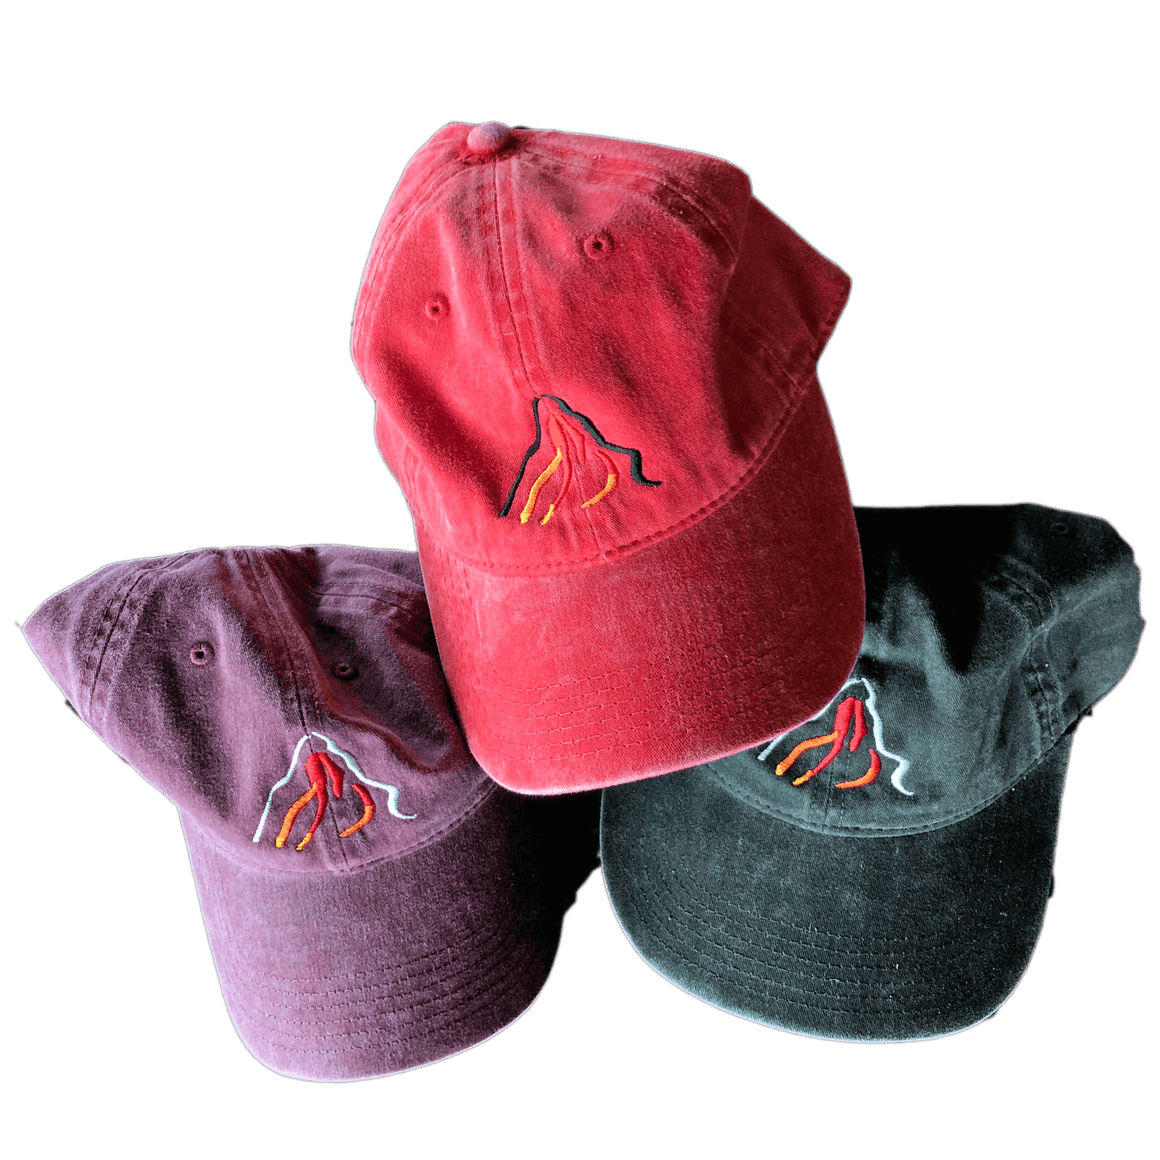 Kona Mountain Hat with mountain logo on front